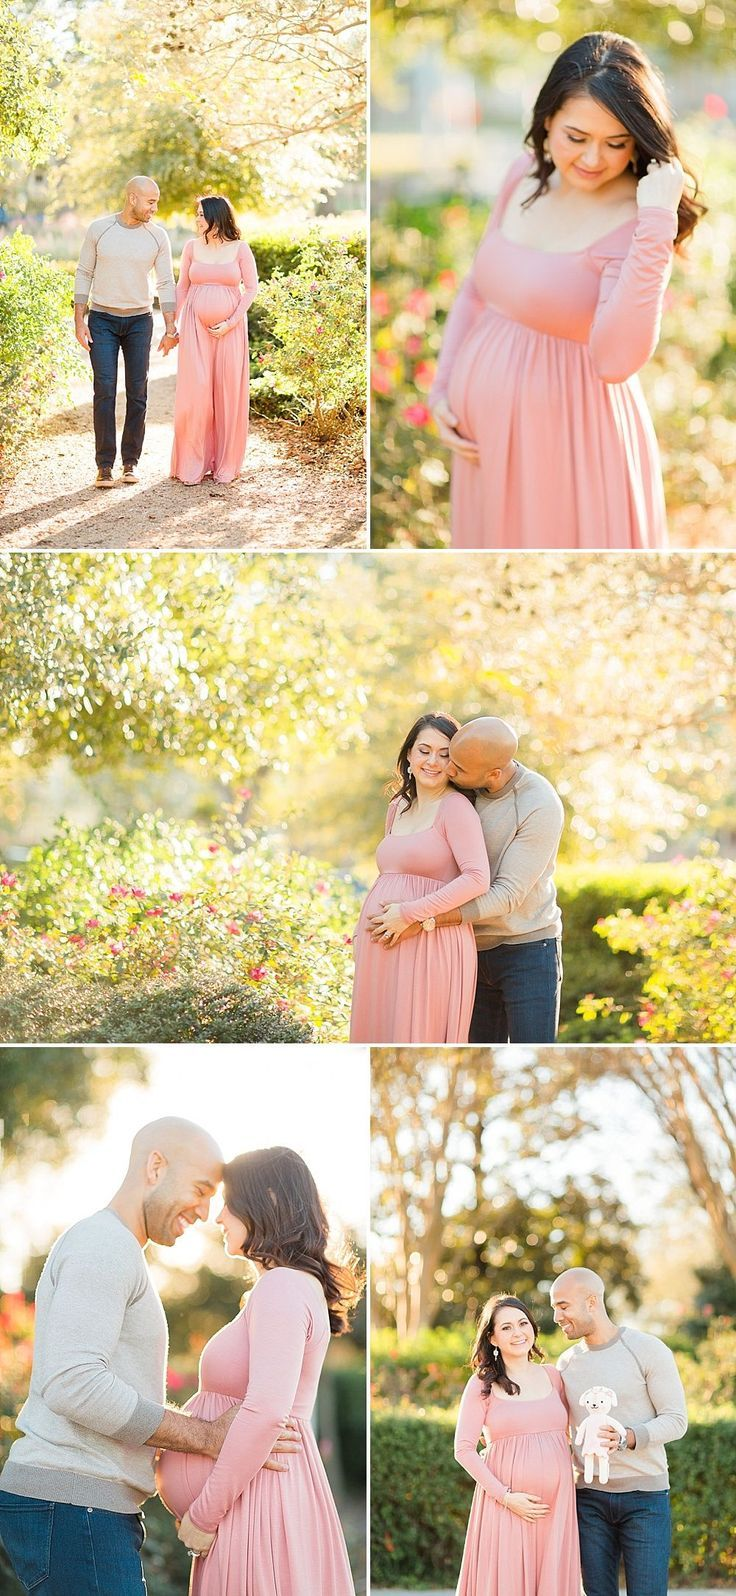 Perfect Time to Take Maternity Photos | Houston Maternity Photographer |  Maternity picture outfits, Baby bump photoshoot, Maternity photoshoot poses